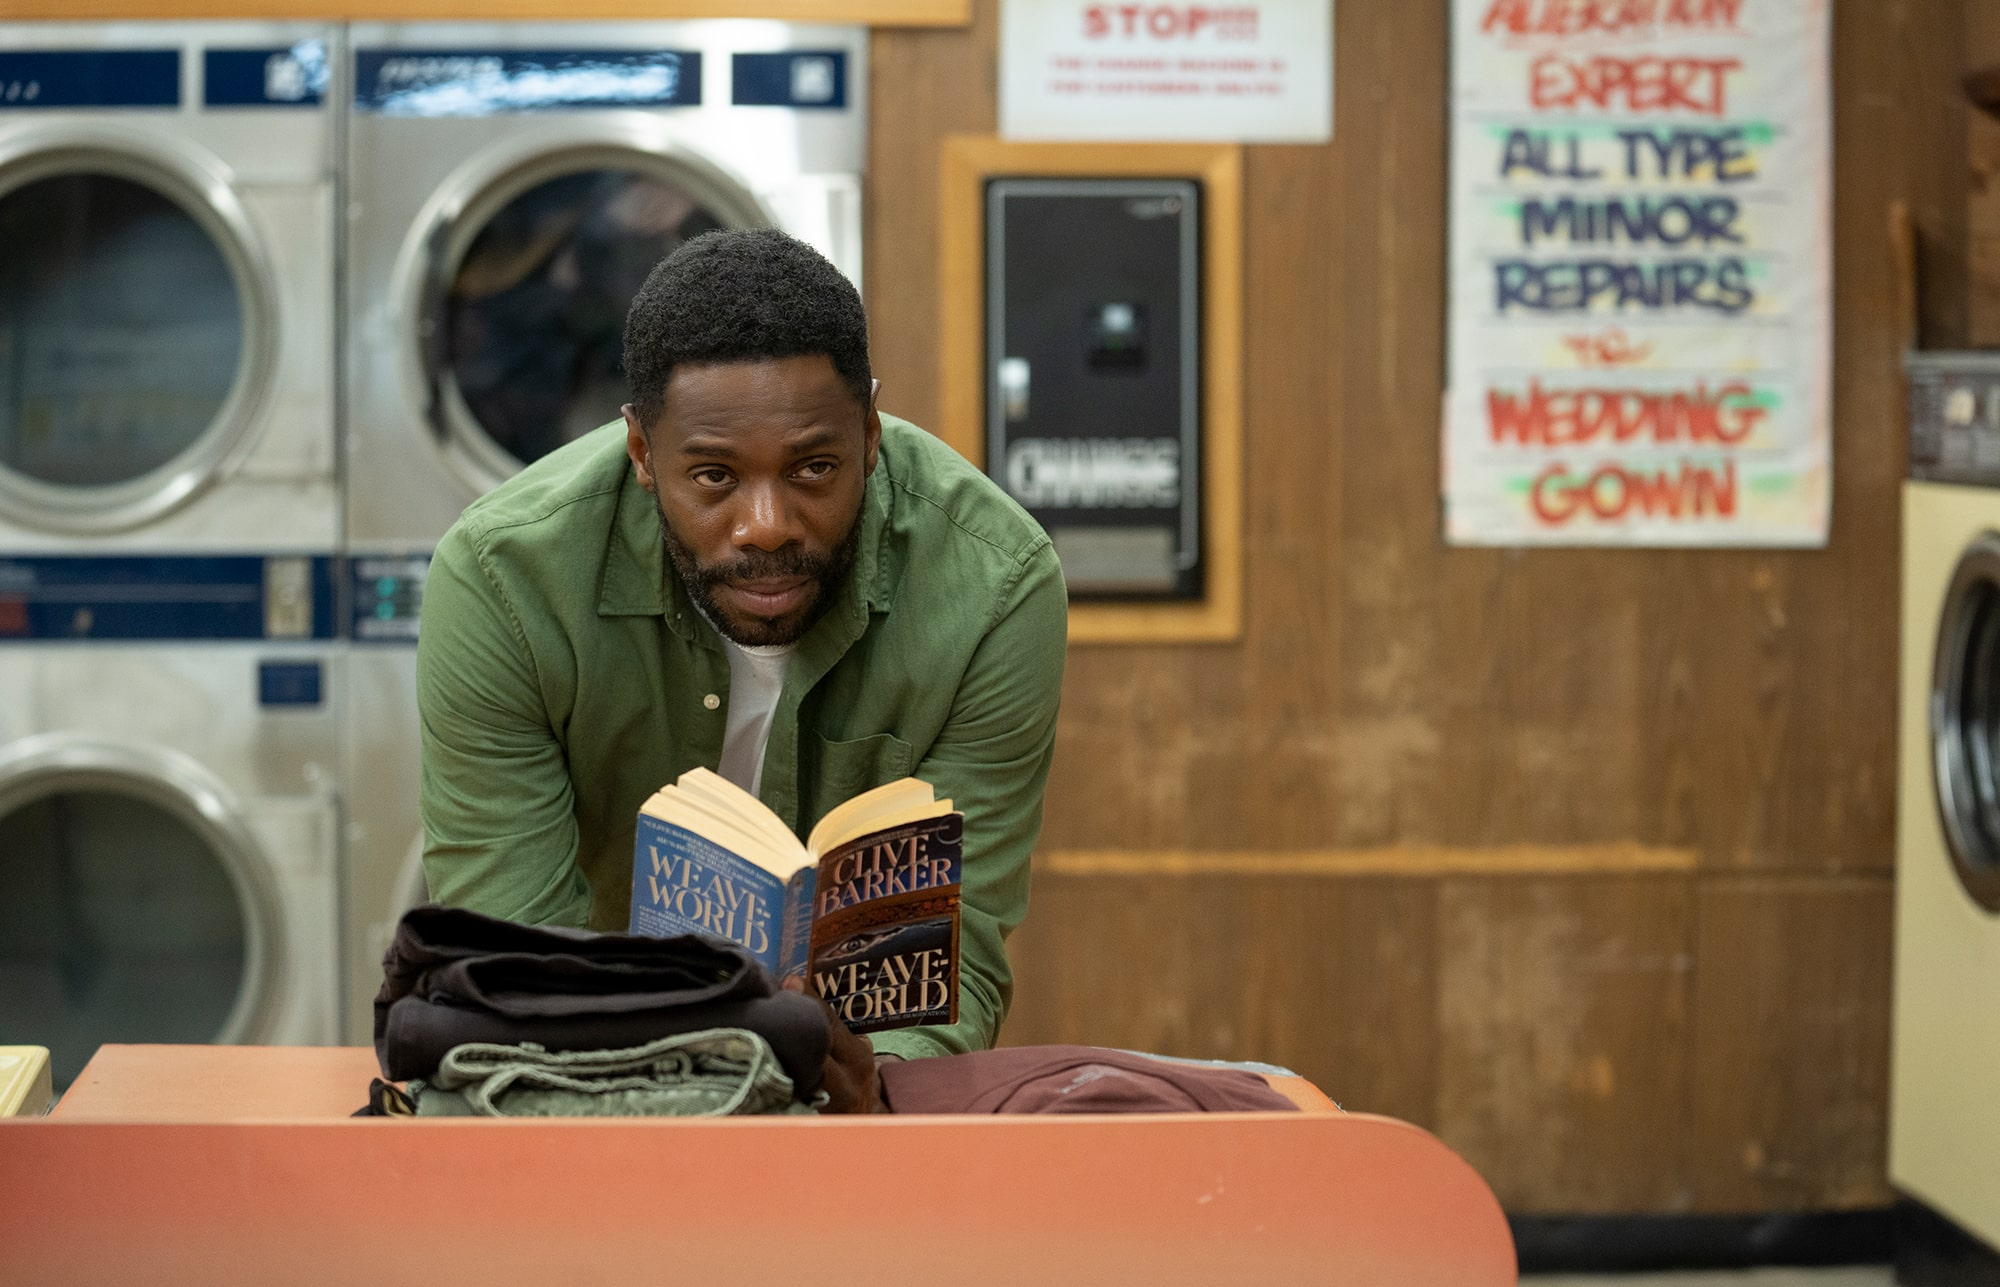 A still from 'Candyman' of Burke reading in the laundromat